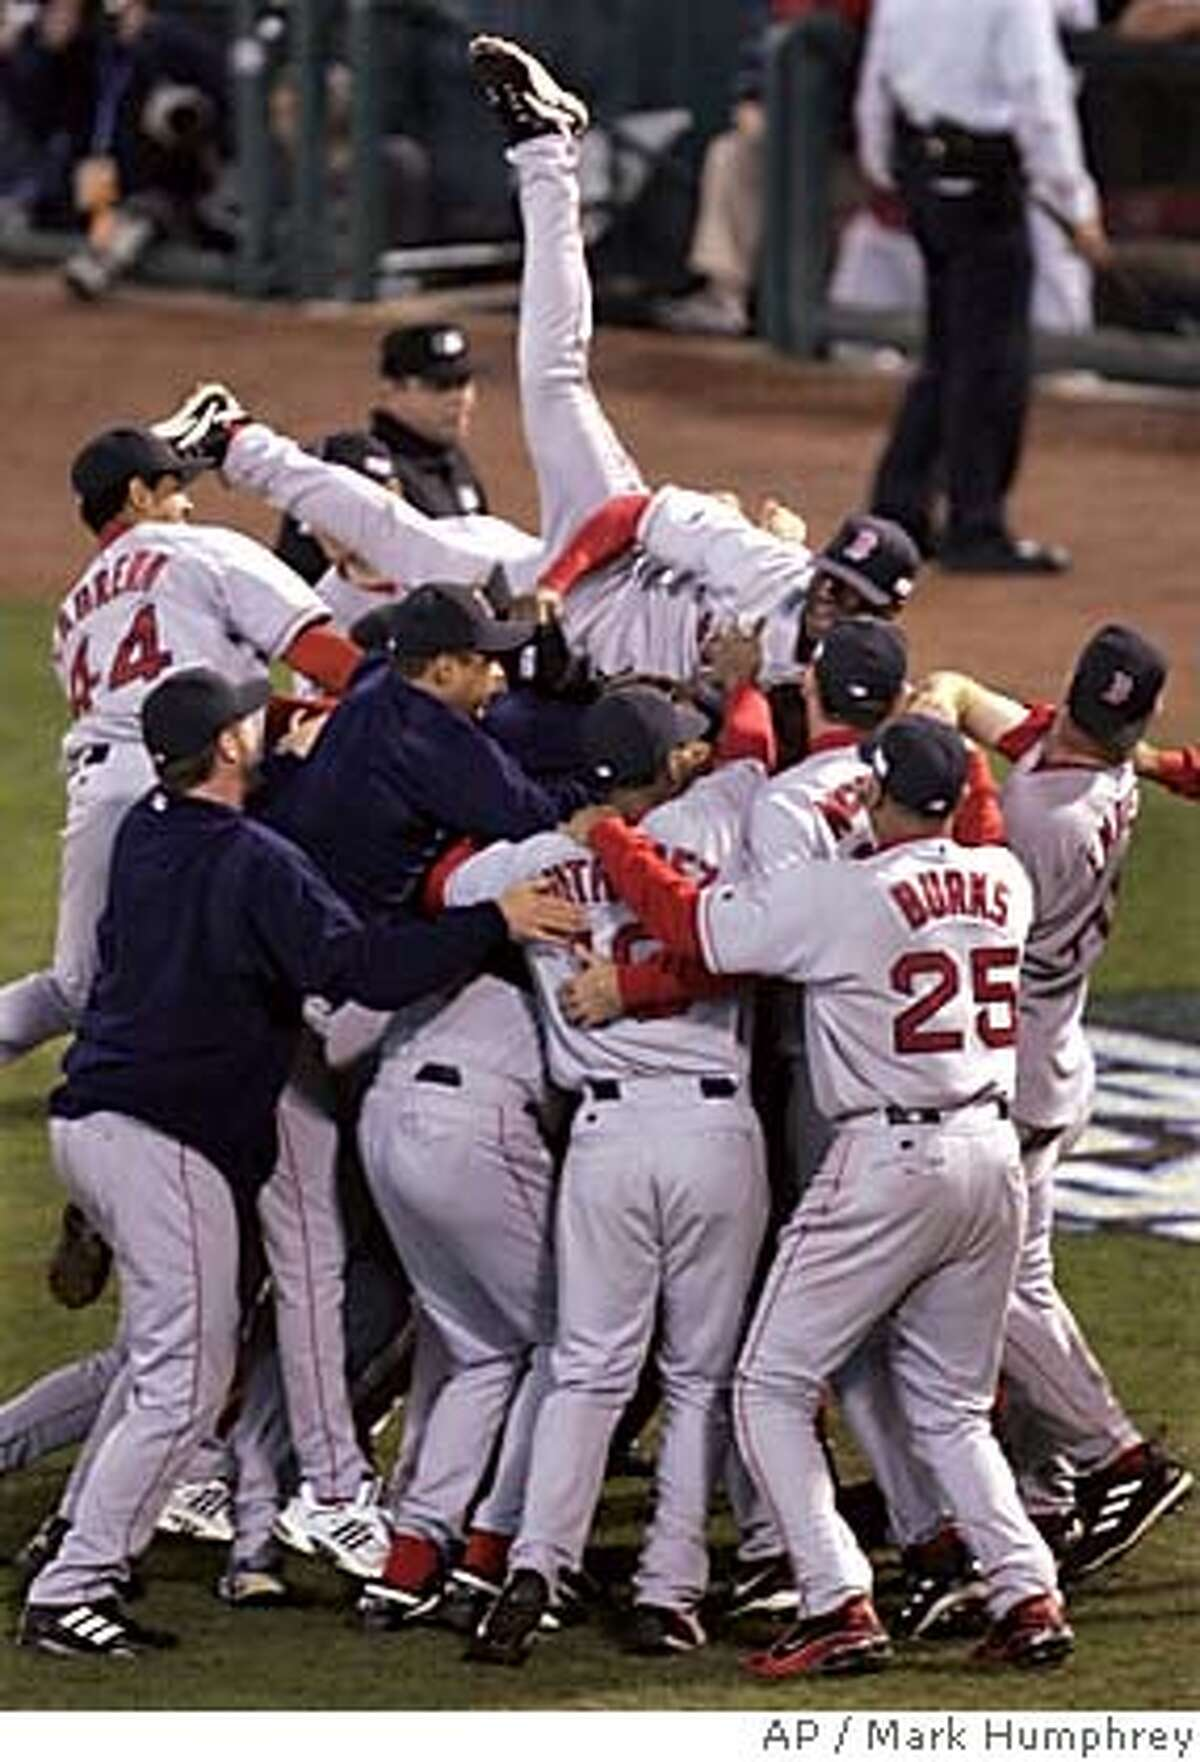 Boston Red Sox Pokey Reese jumps on top of his teammates after the Red Sox defeated the St. Louis Caridnals 3-0 in Game 4 to win the World Series at Busch Stadium in St. Louis, Wednesday, Oct. 27, 2004. (AP Photo/Mark Humphrey)